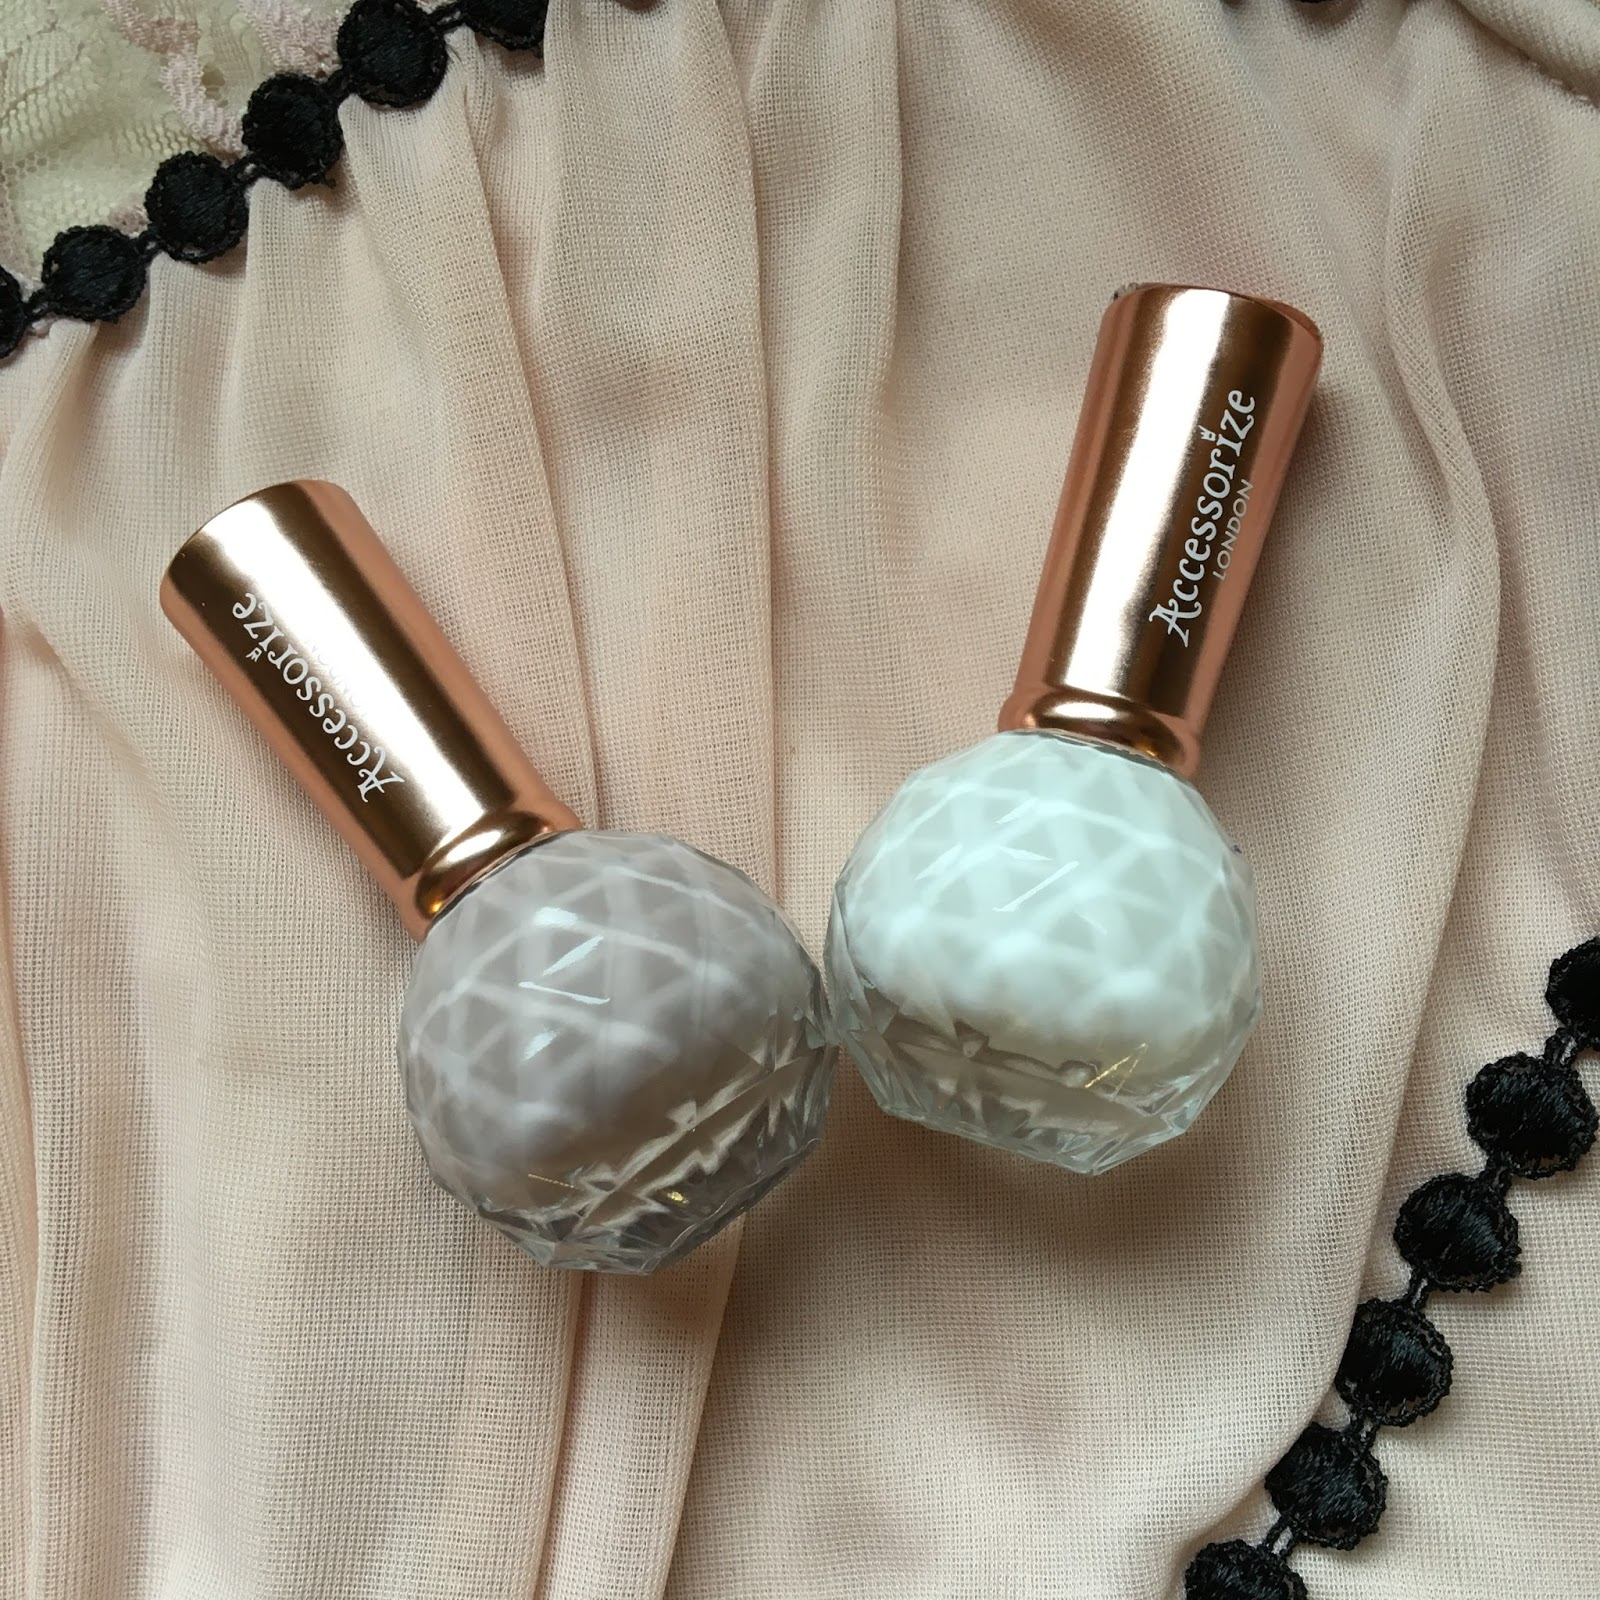 Accessorize Neutral Nail Polish